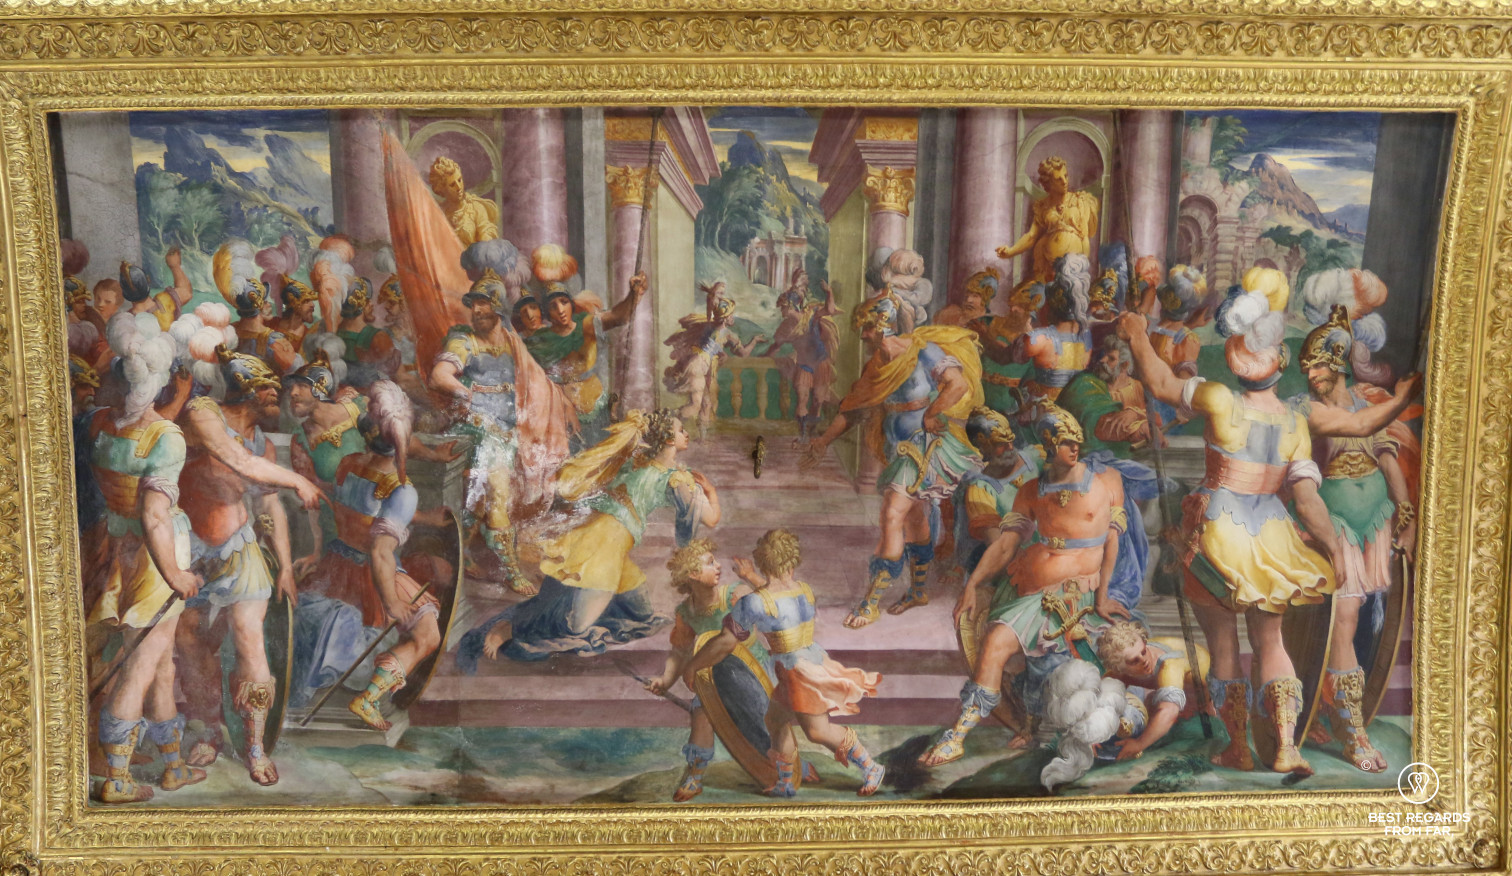 Rare fresco at the Palazzo Baldassarre Lomellini liftyle store on Via Garibaldi, Genoa, Liguria, Italy